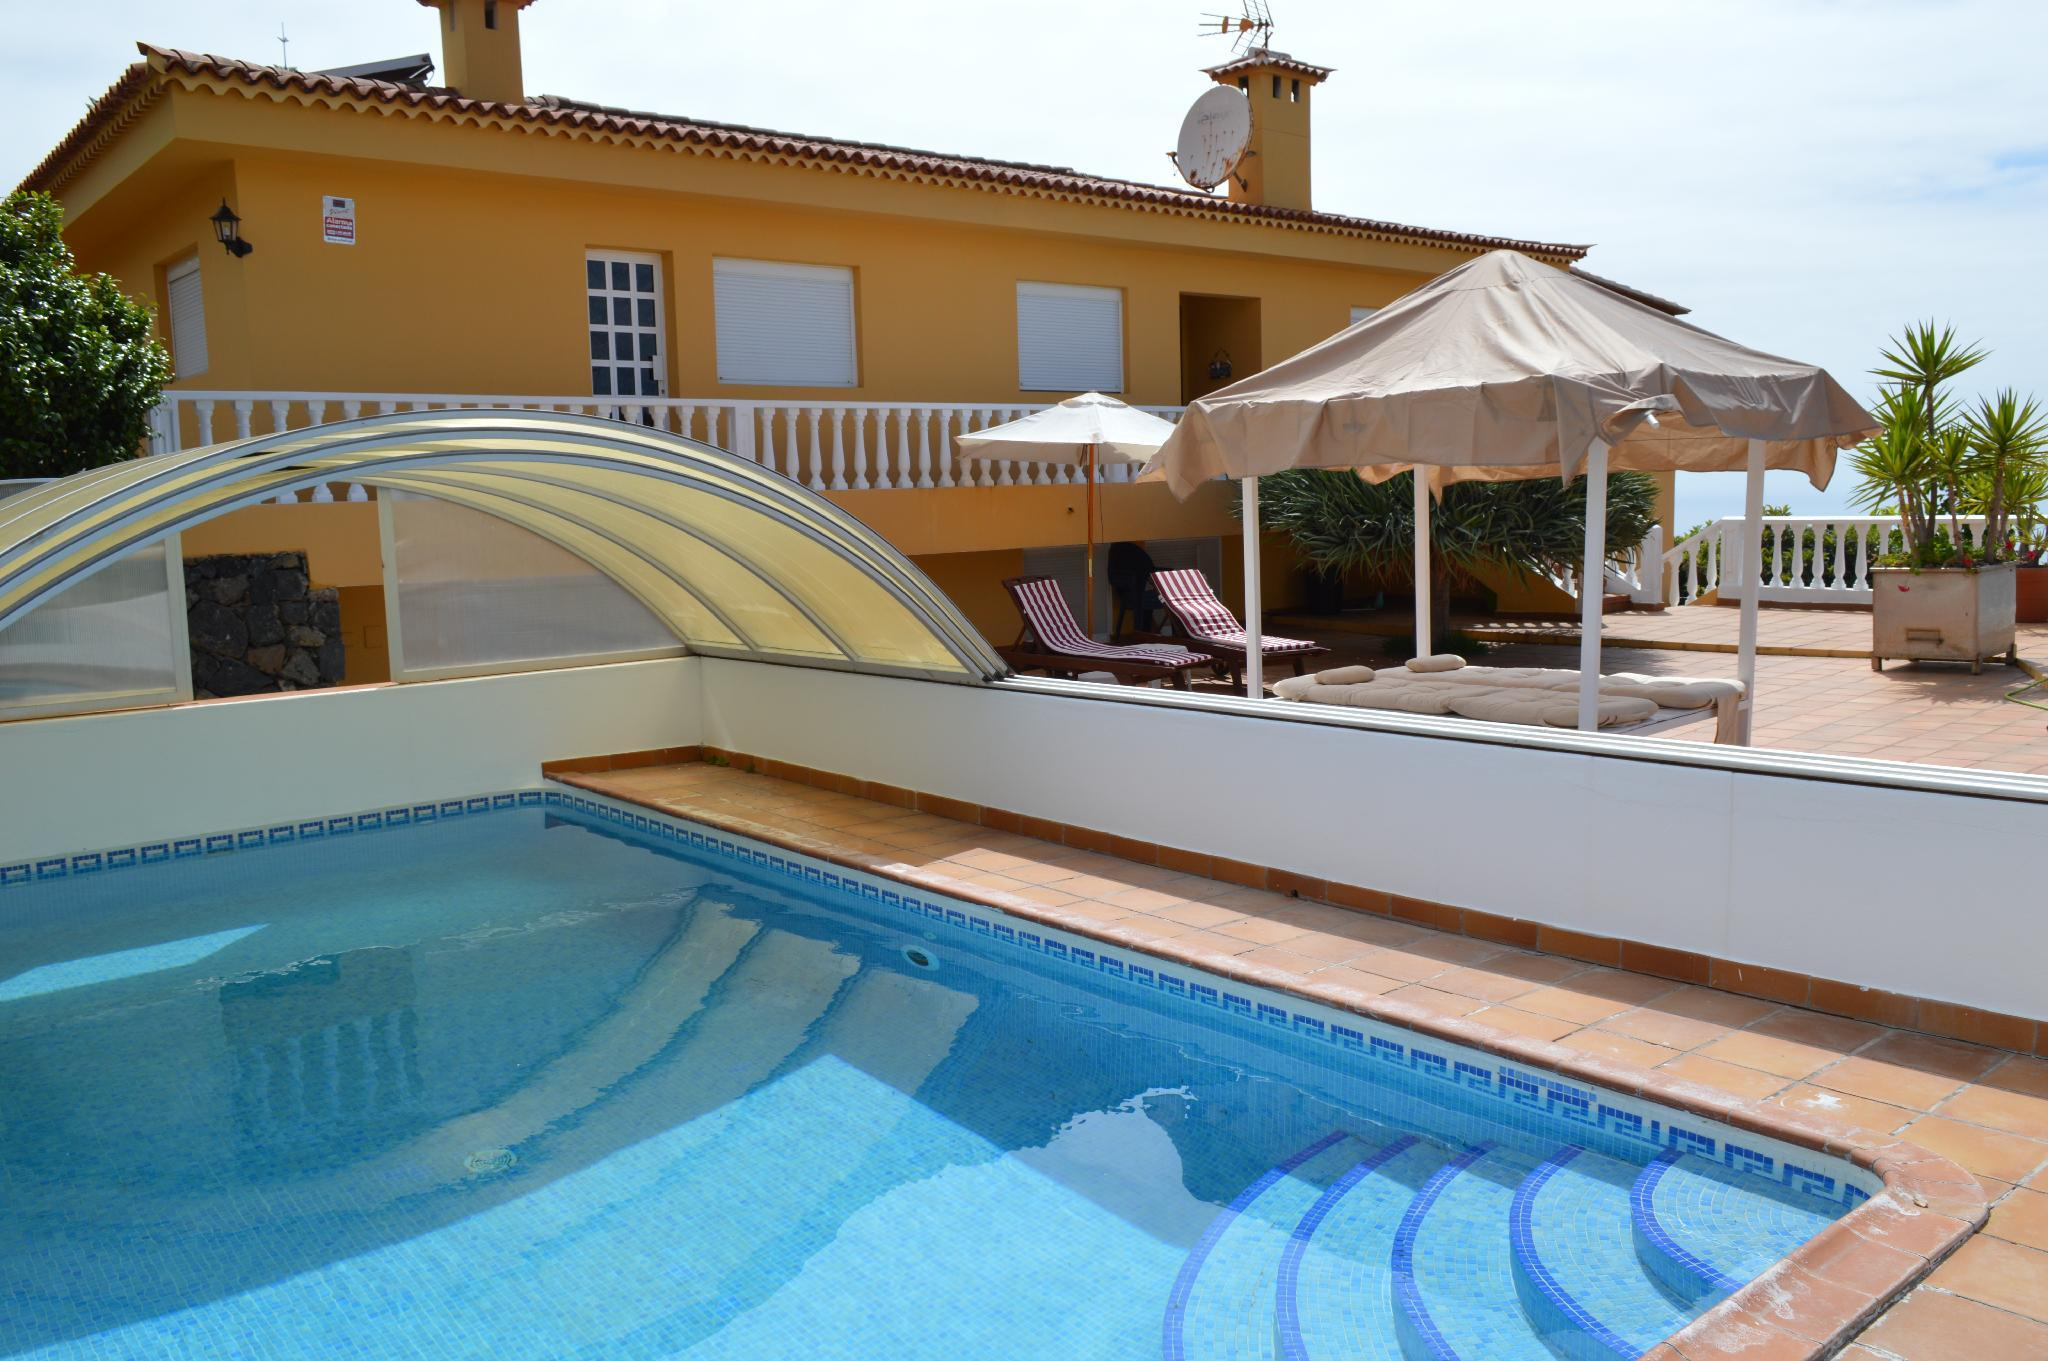 Nice villa, located in a quiet residential area .